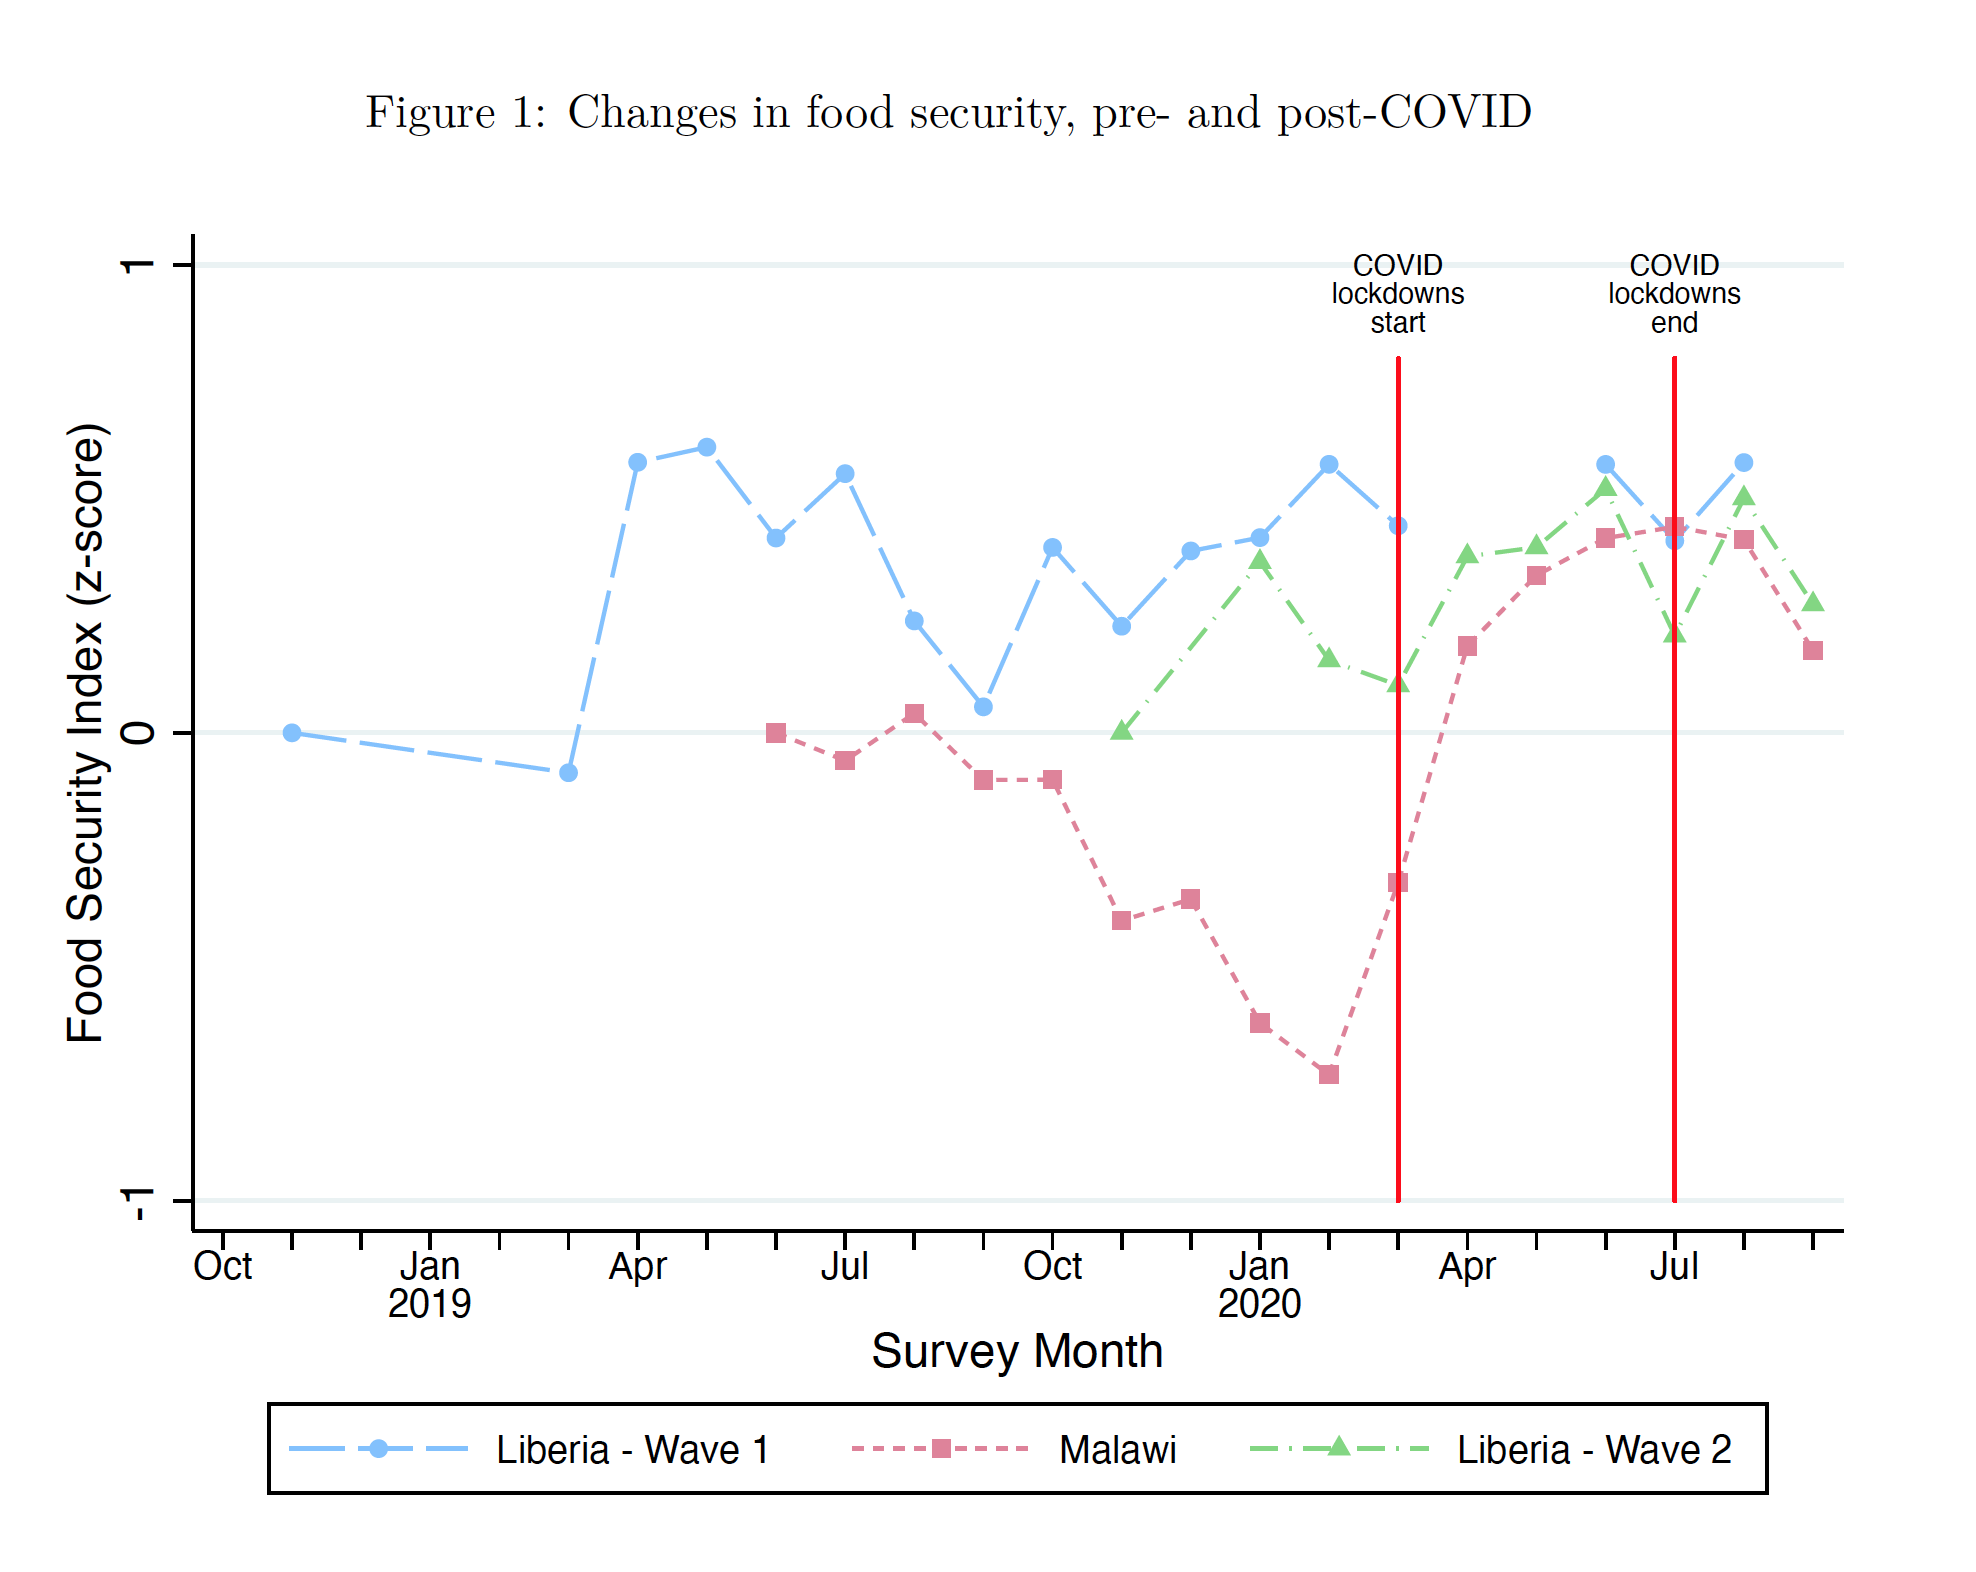 Figure 1: Changes in Food Security Pre- and Post-COVID